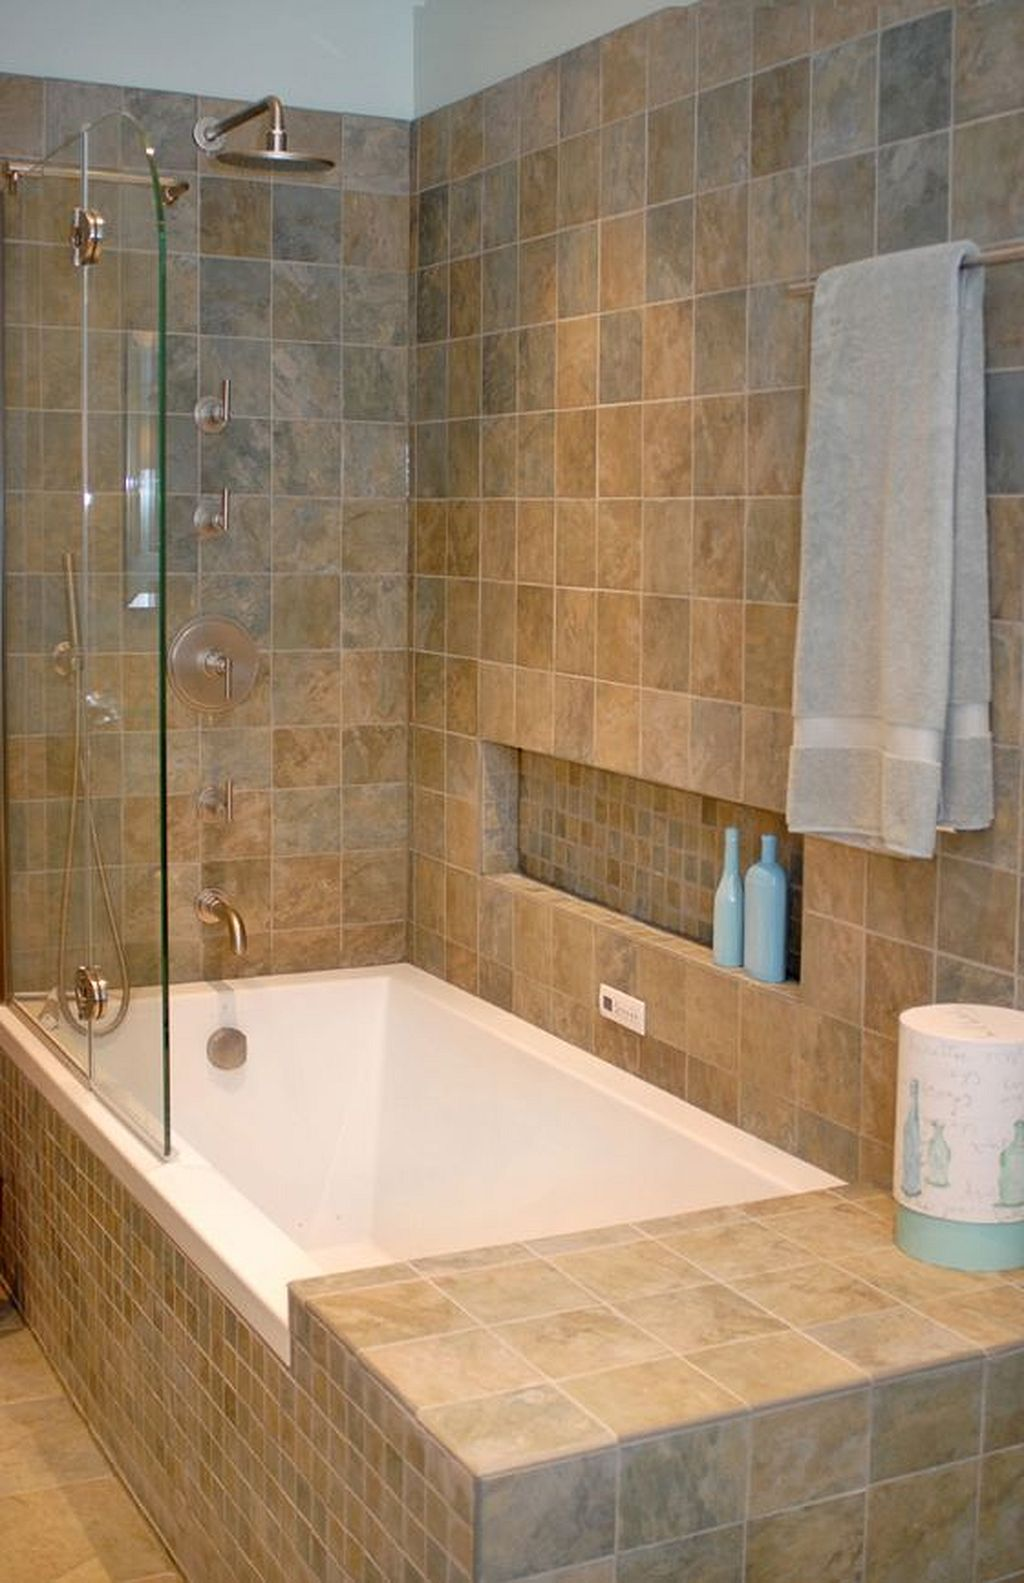 Small Bathroom Tub Shower Combo Ideas 34 With Images Bathroom